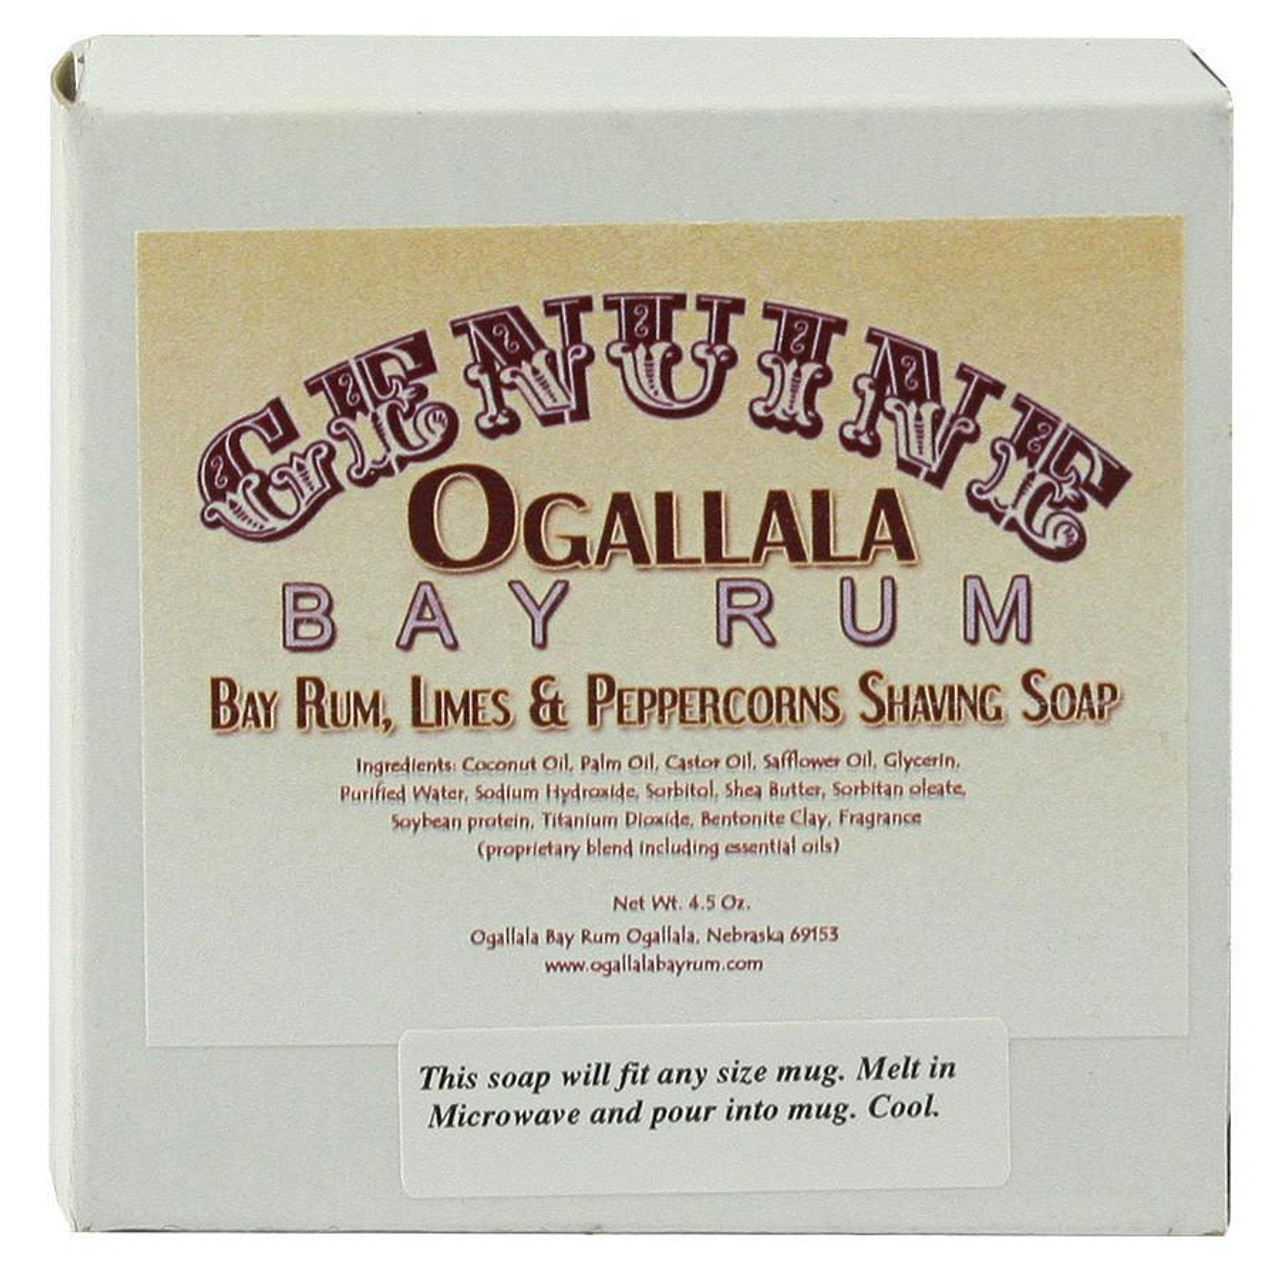 Ogallala Bay Rum, Lime & Peppercorn Shave Soap, 4.5oz